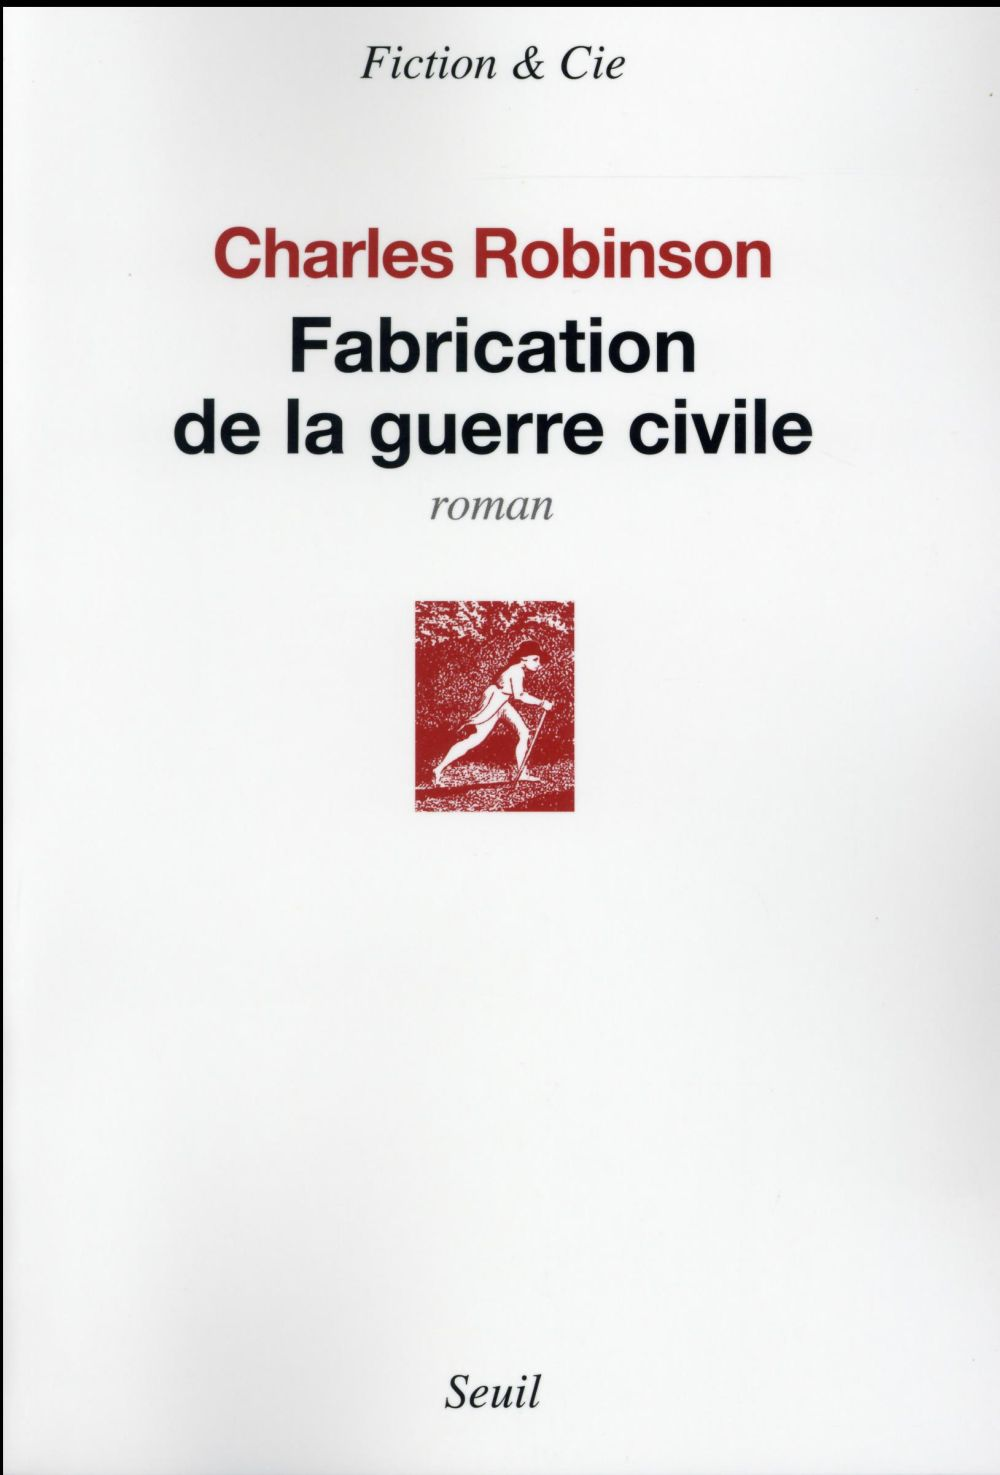 FABRICATION DE LA GUERRE CIVILE